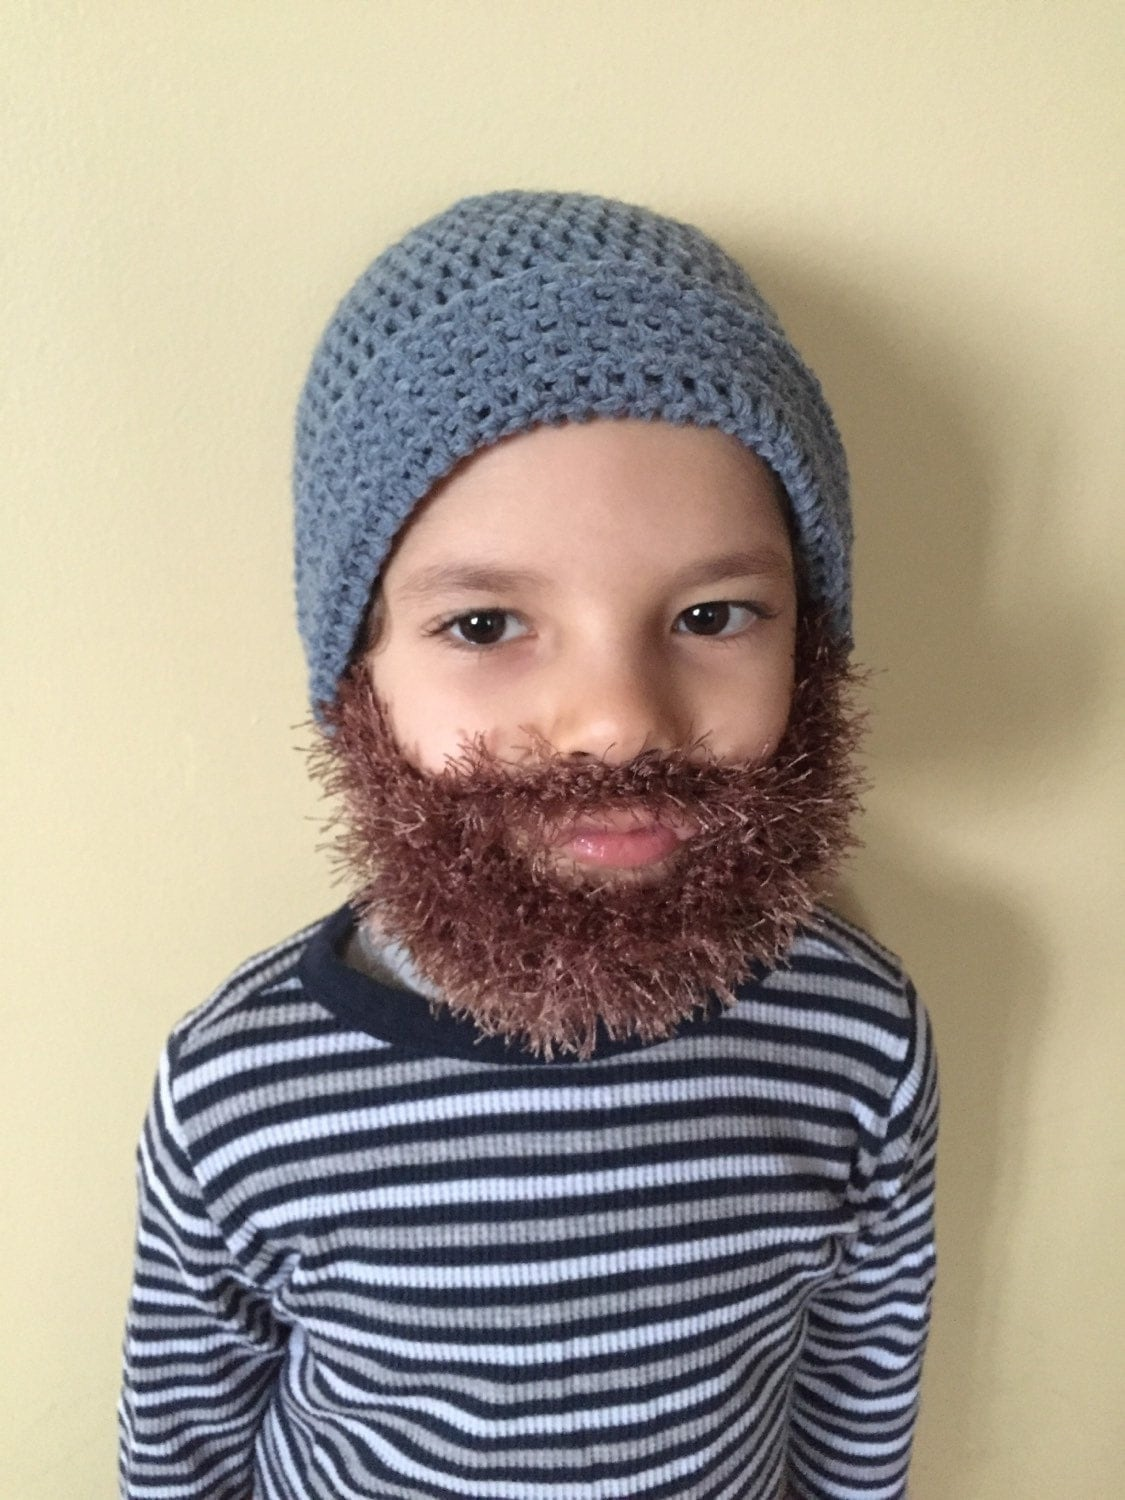 Child's Beard Beanie | Image via Etsy